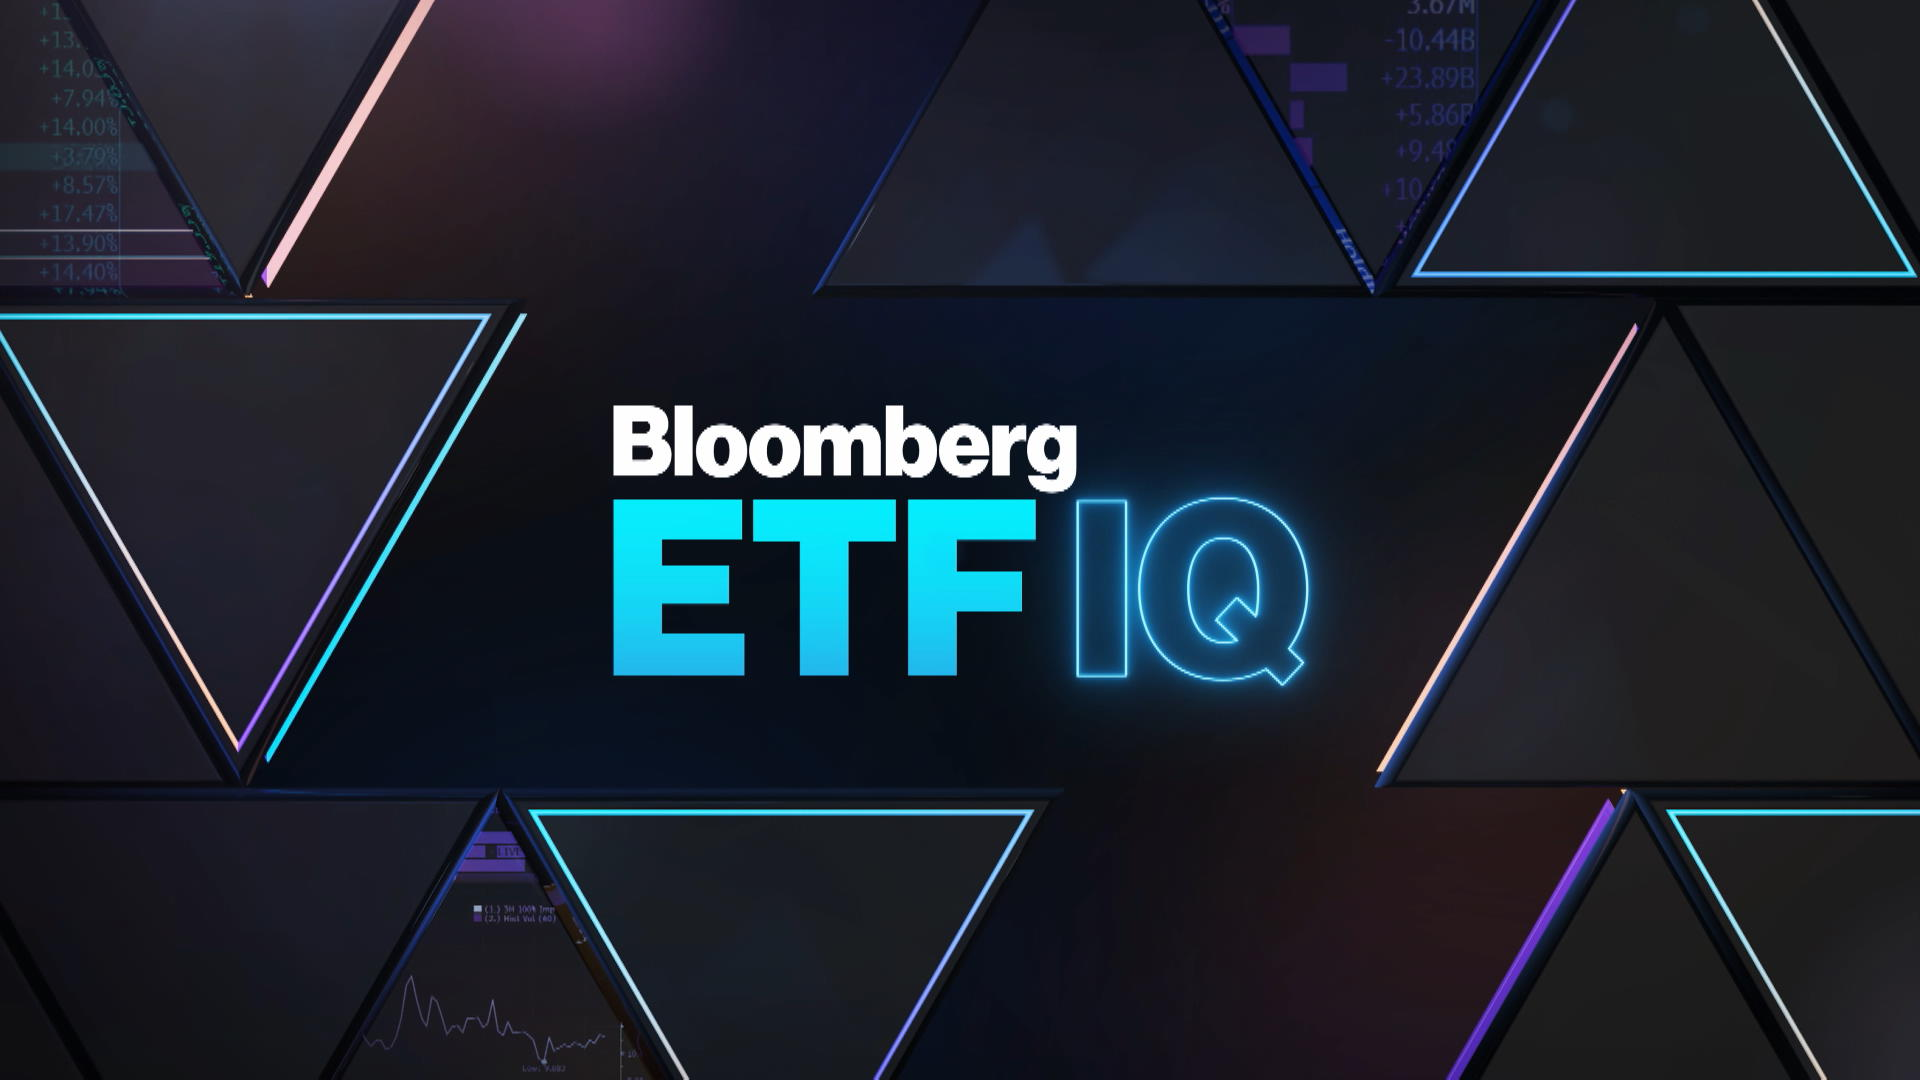 'Bloomberg ETF IQ' Full Show (09/18/2019)